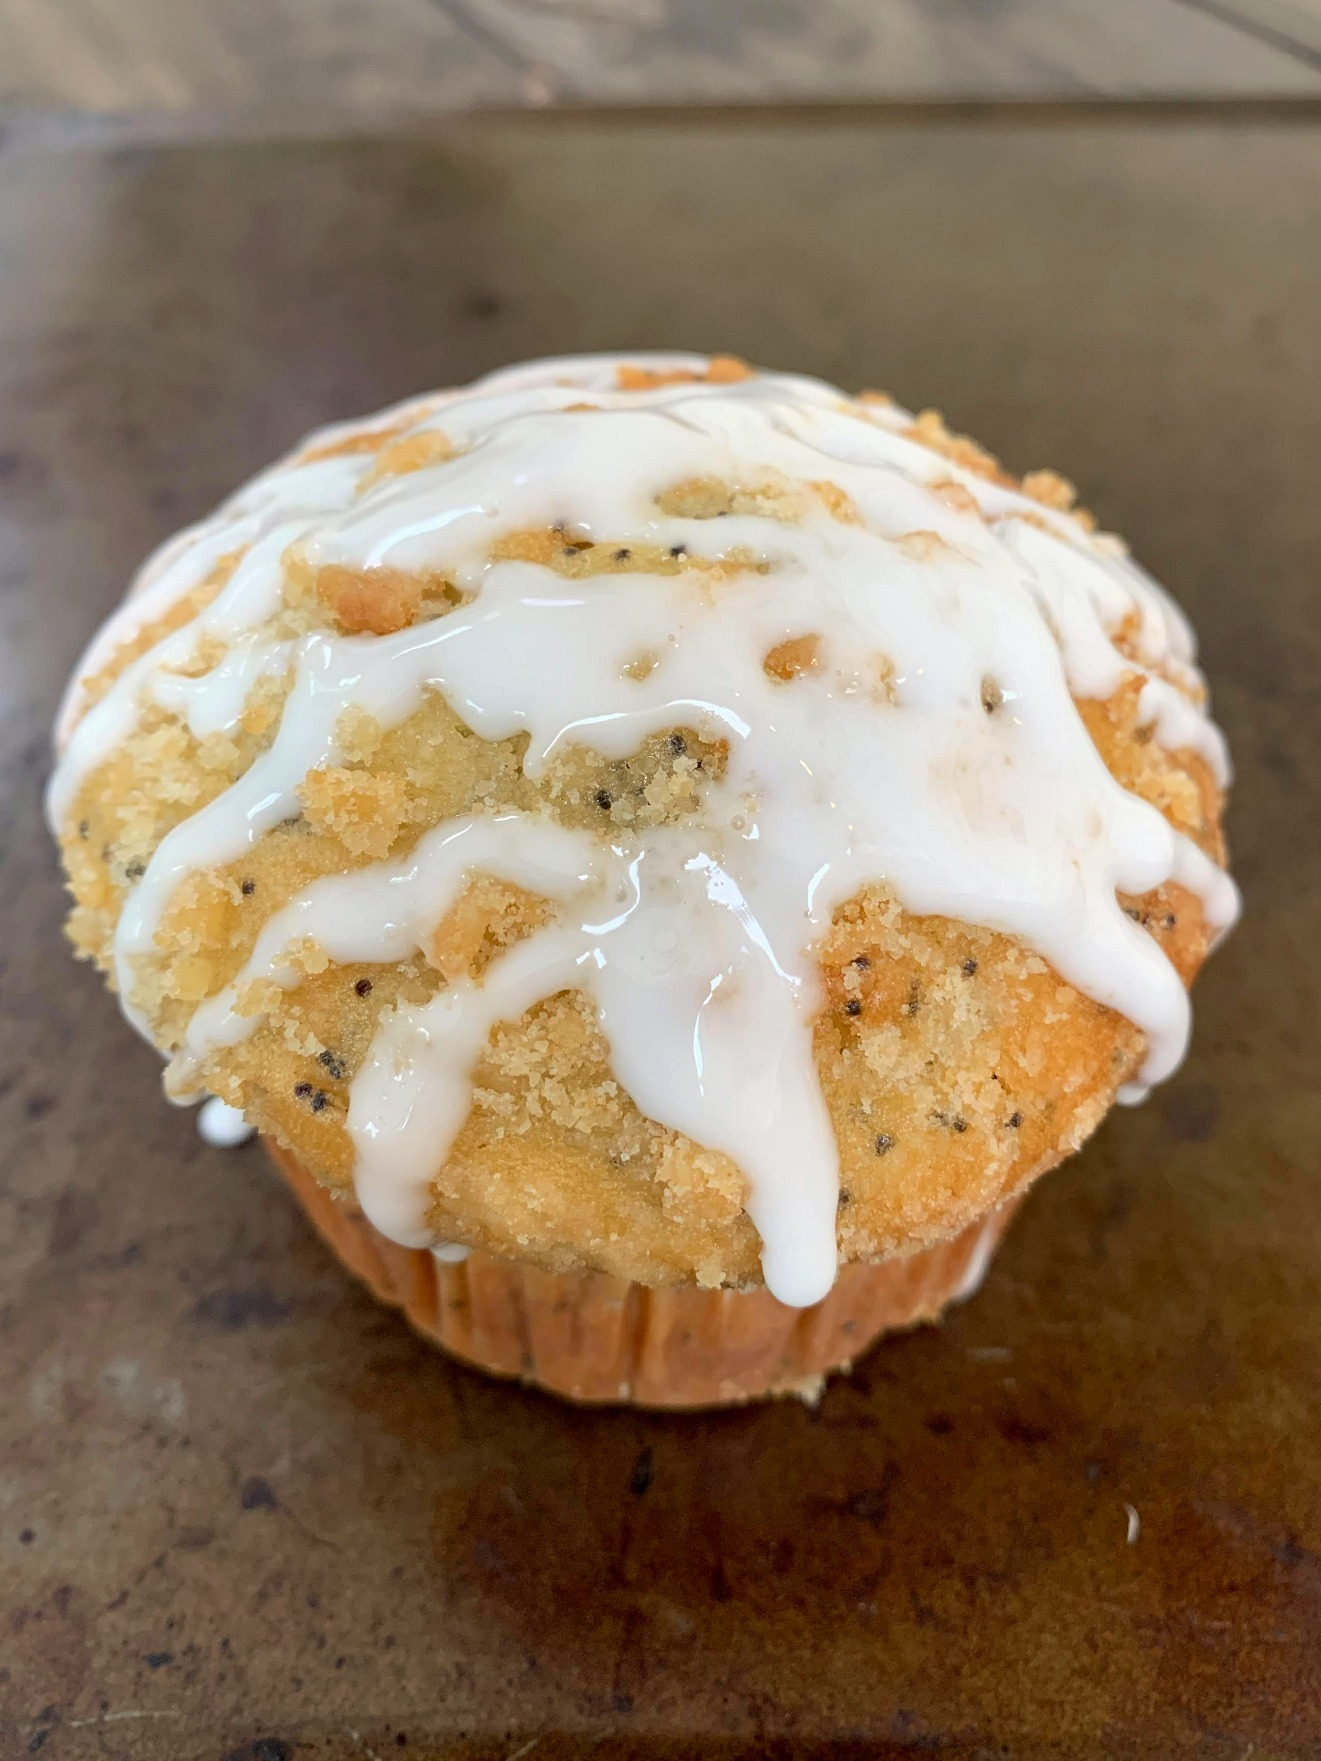 a lemon muffin drizzled with glaze